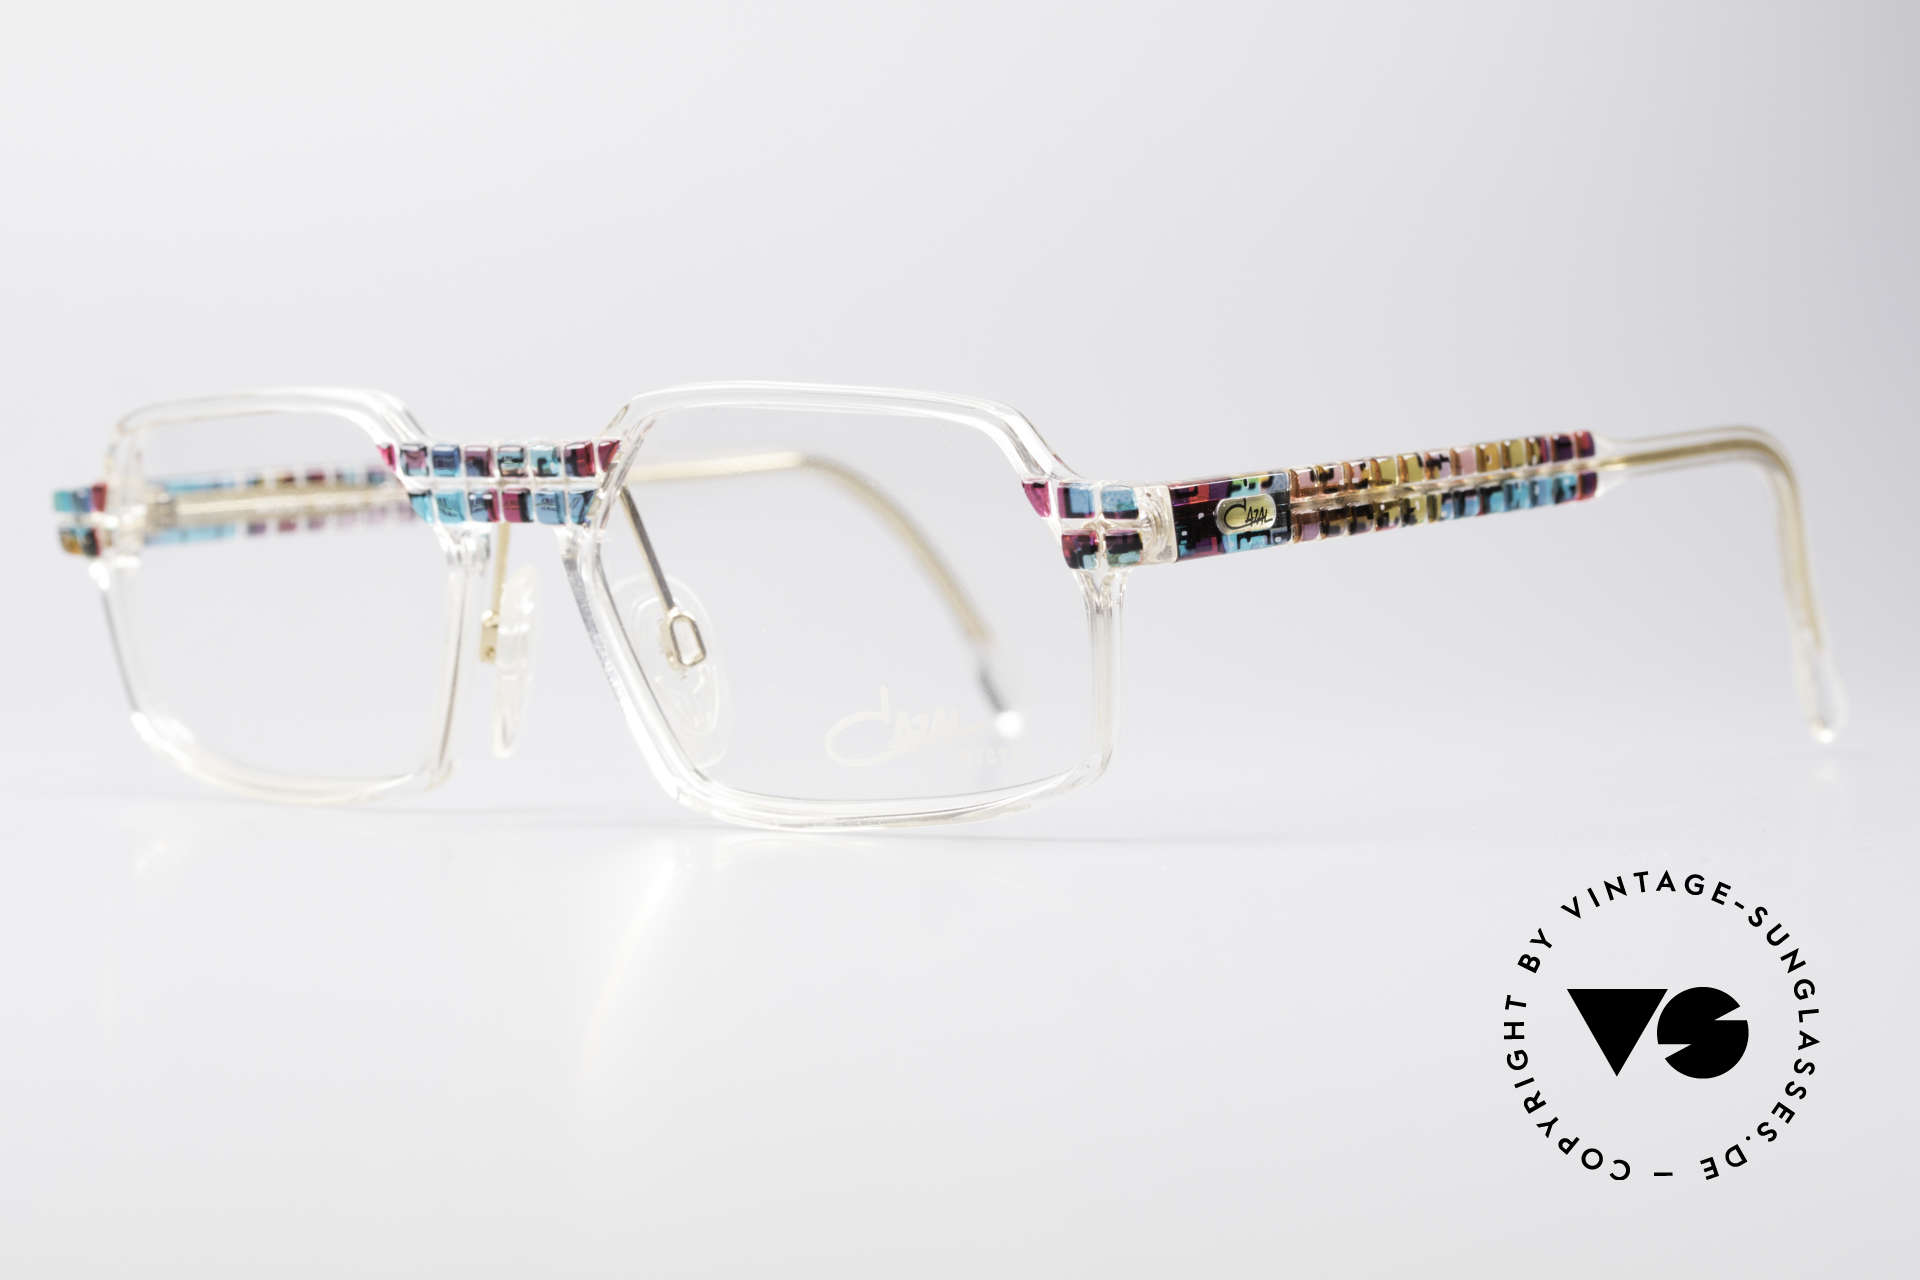 Cazal 511 - Crystal Limited Vintage Cazal, special edition with crystal clear frame - truly unique!, Made for Men and Women